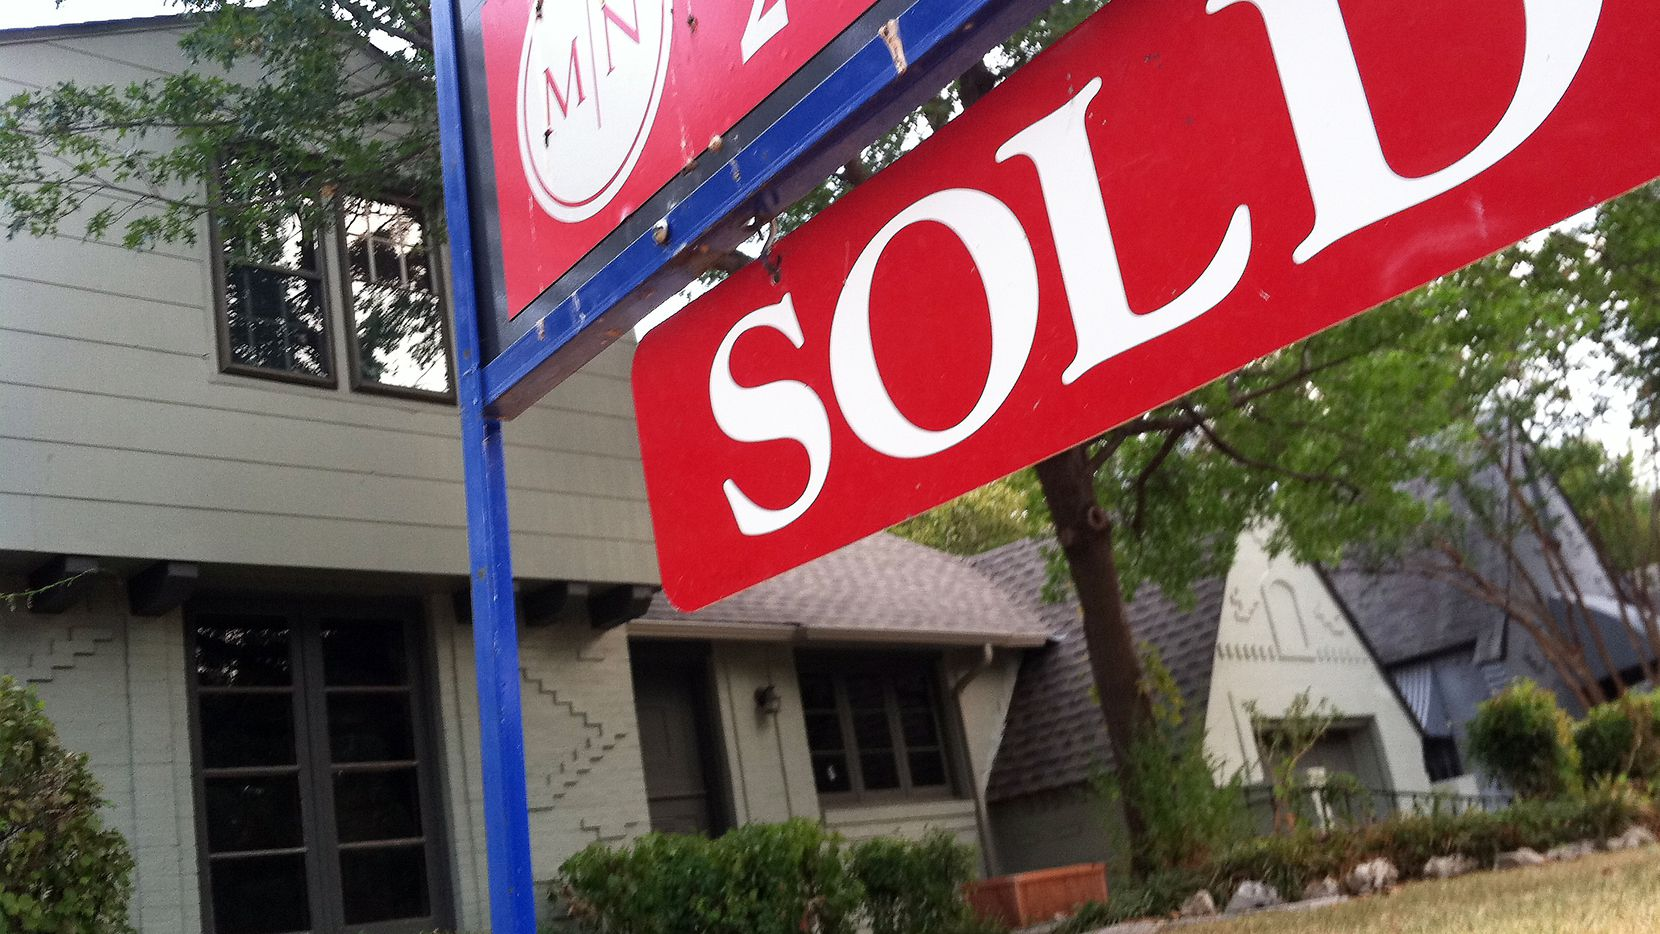 Dallas-Fort Worth home prices were up 5.1% in July from a year ago, according to Zillow.